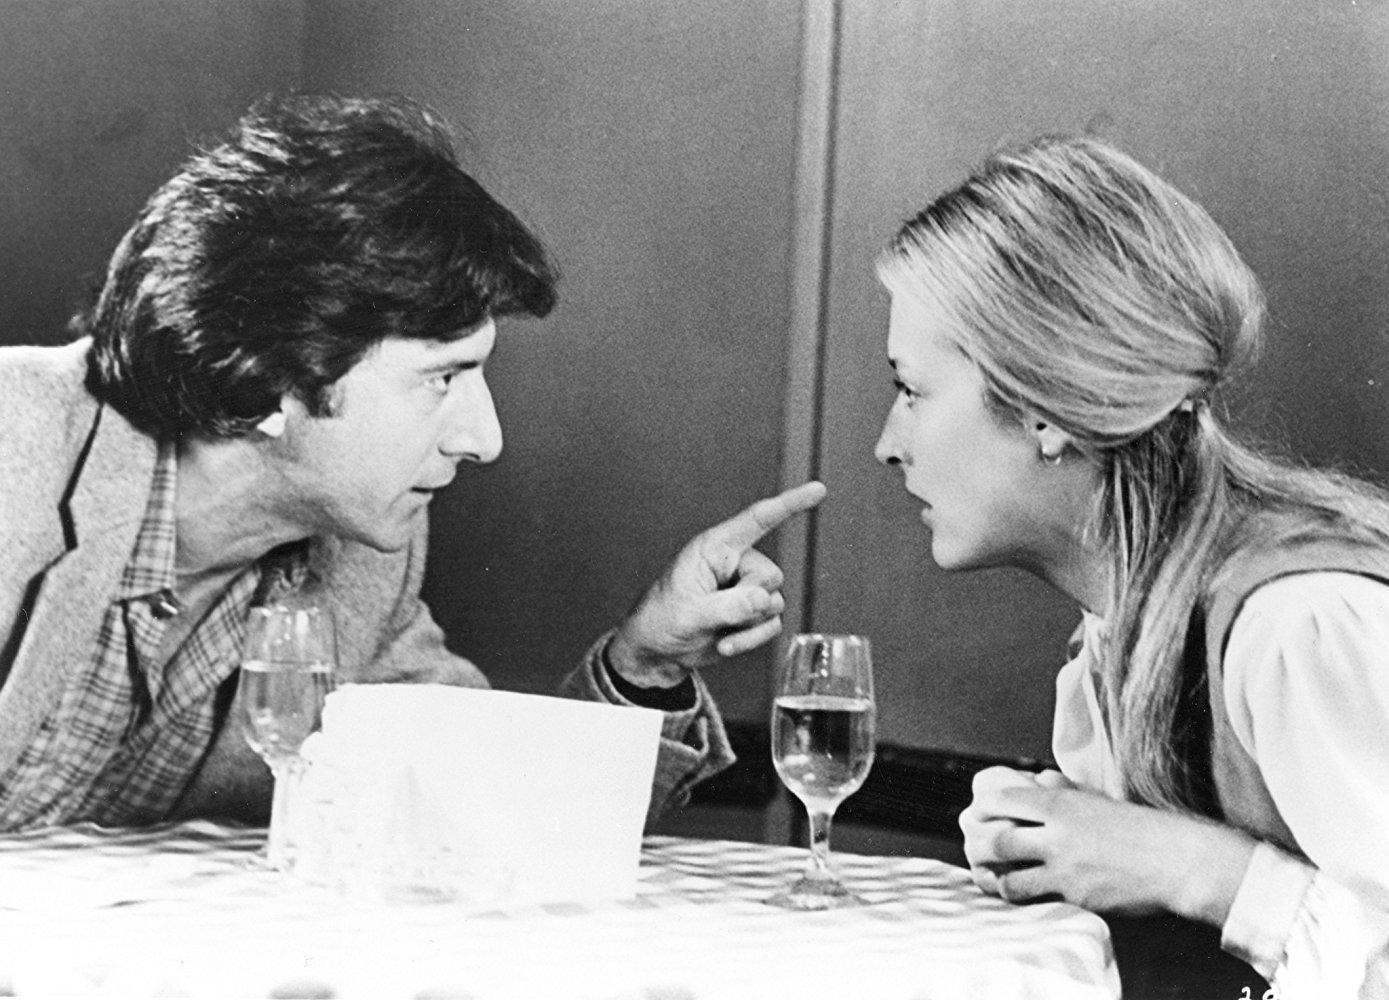 Dustin Hoffman and Meryl Streep in Kramer vs. Kramer